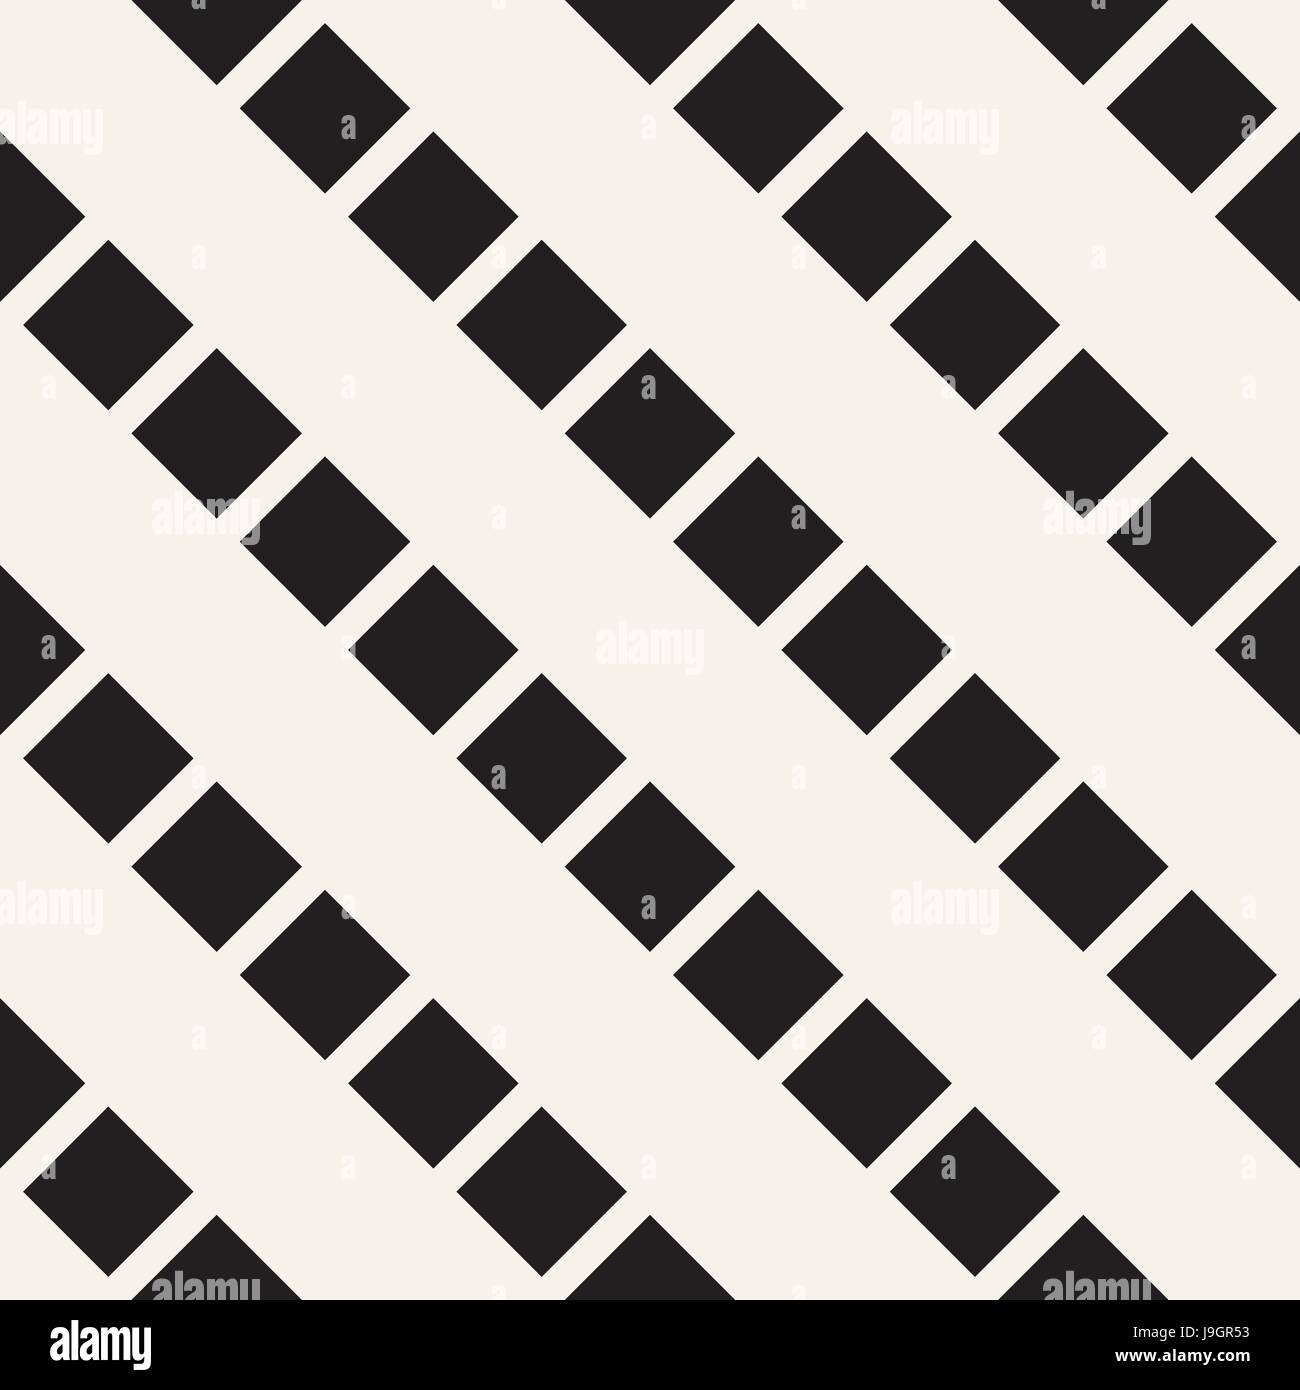 Seamless black and white checkered texture stock images image - Crosshatch Vector Seamless Geometric Pattern Crossed Graphic Rectangles Background Checkered Motif Seamless Black And White Texture Of Crosshatched